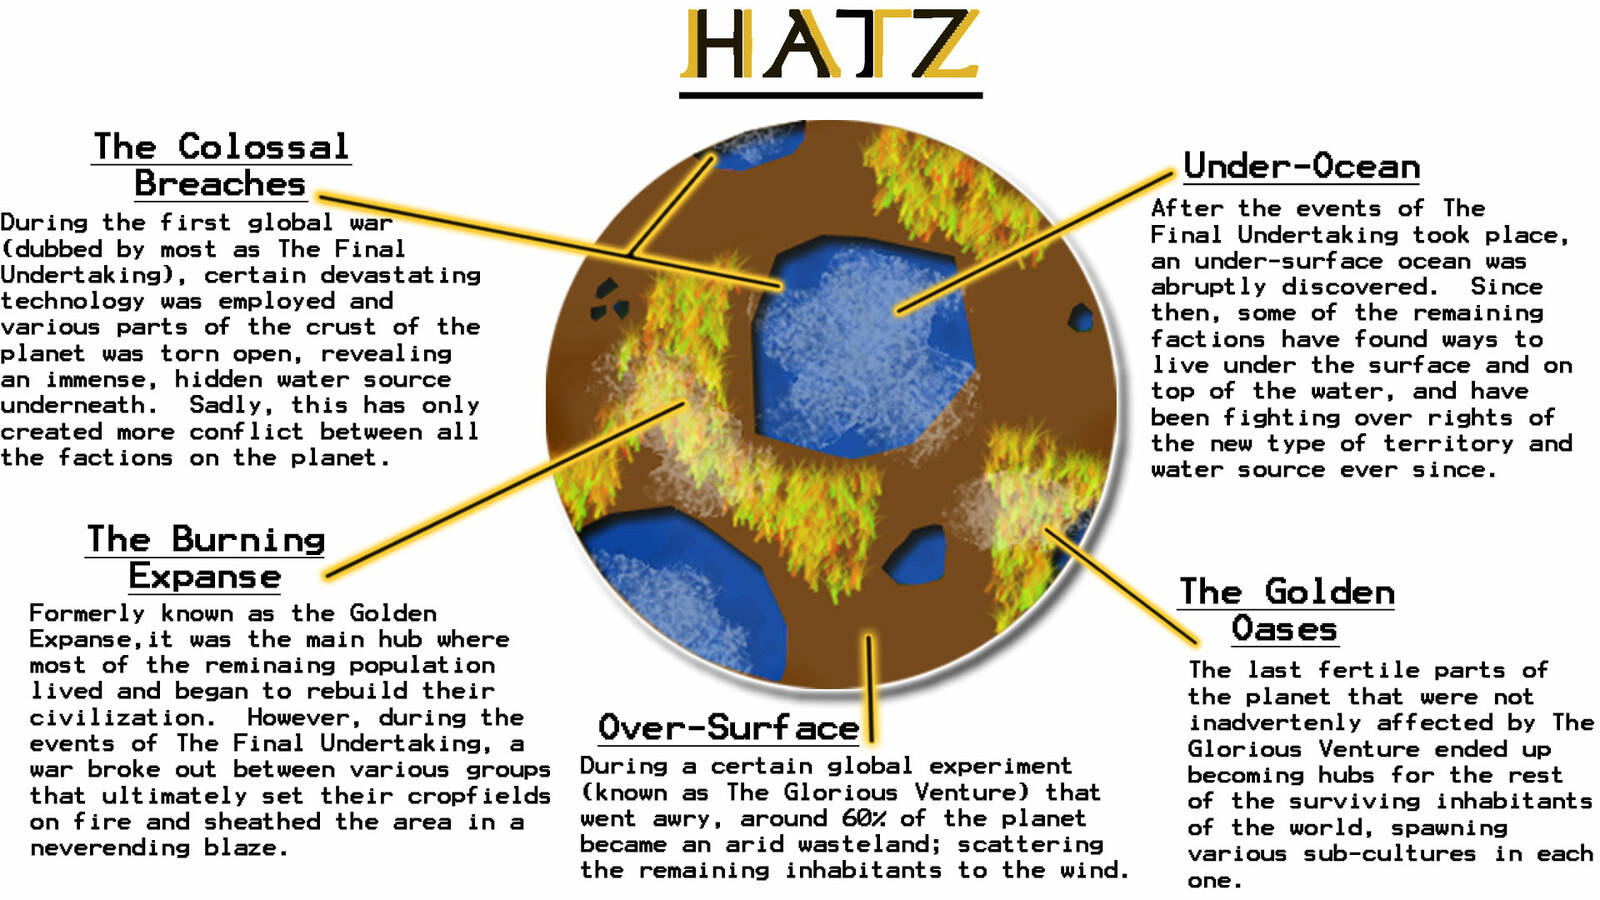 The original concept for how Hatz changes over time